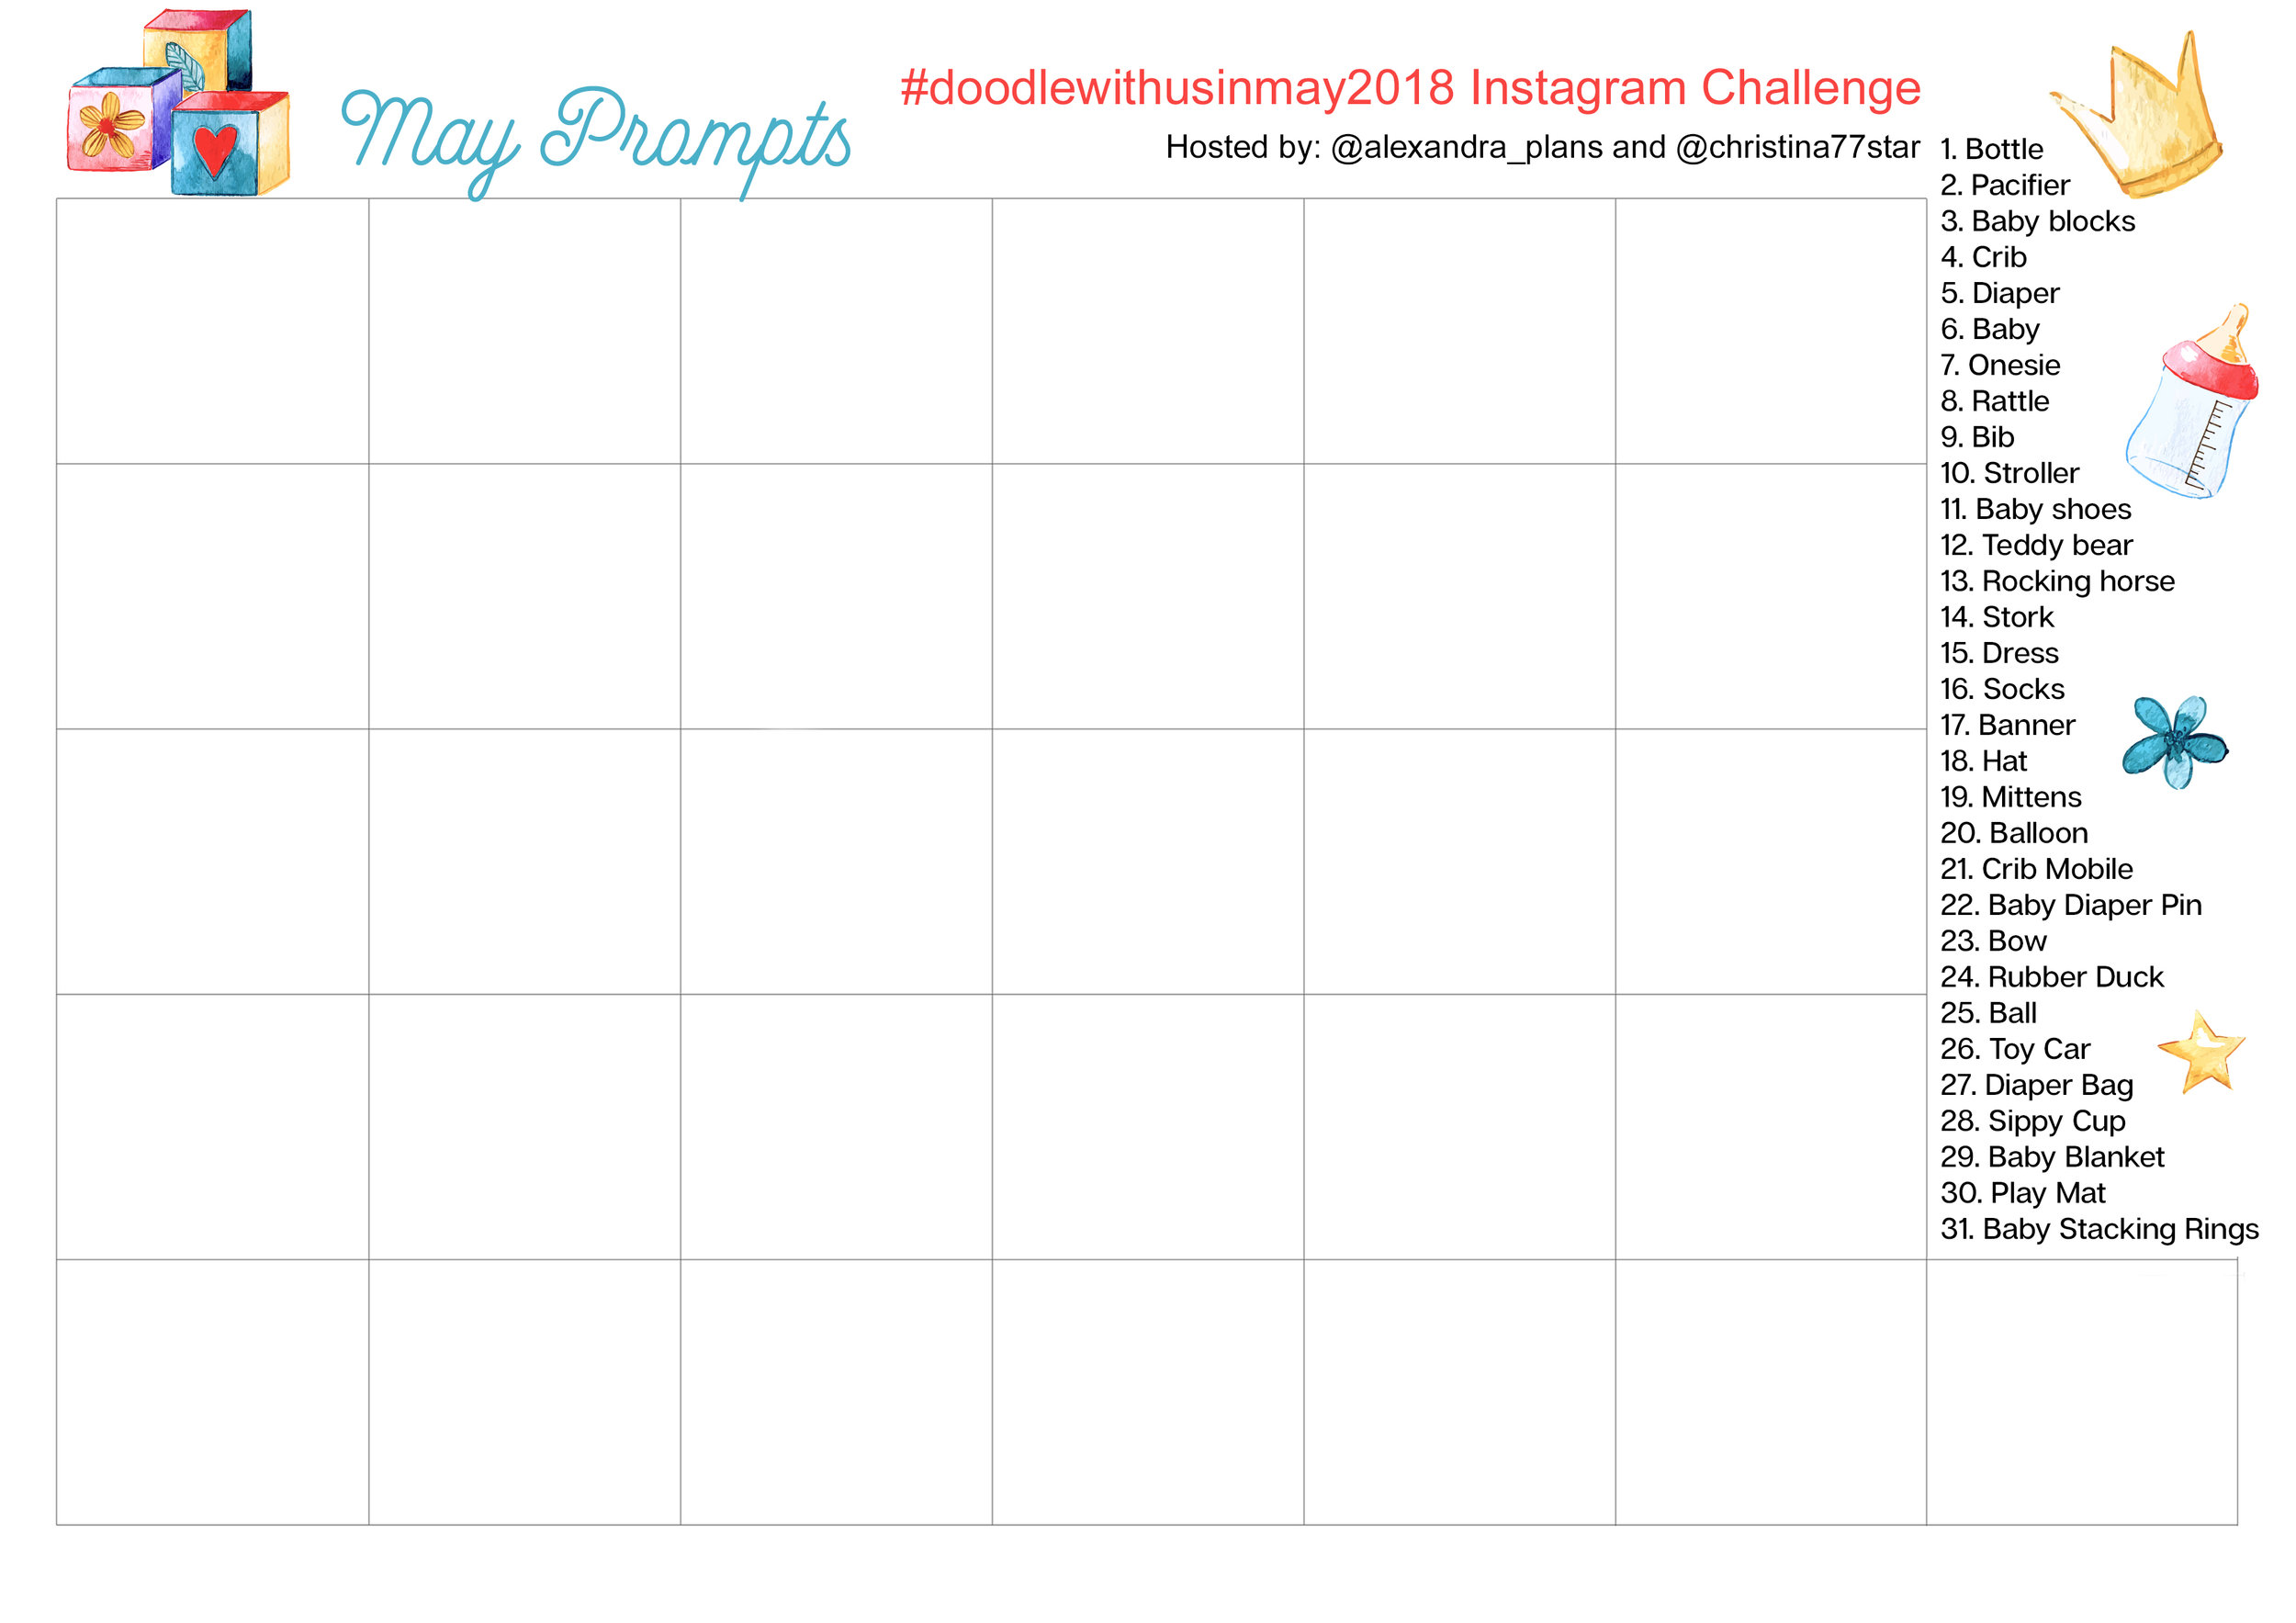 Doodle With Us Instagram Challenge - May 2018